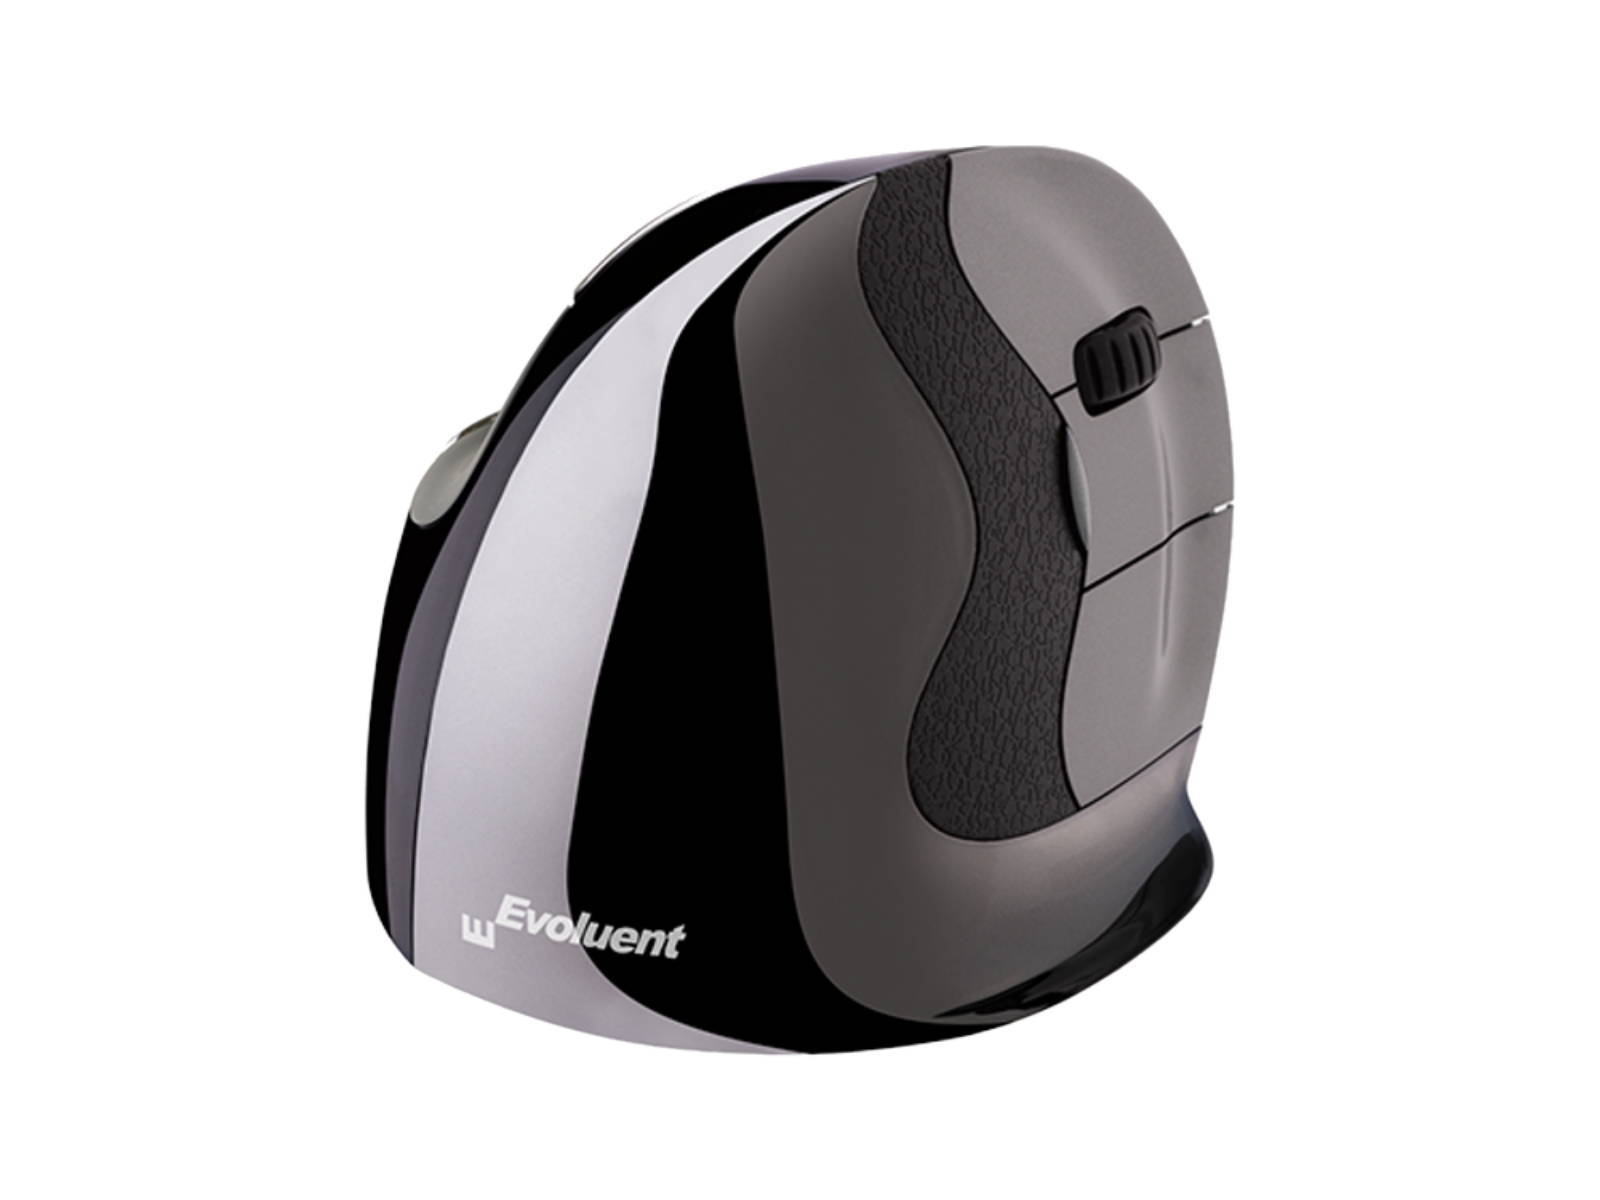 Evoluent VMR4 vertical Mouse